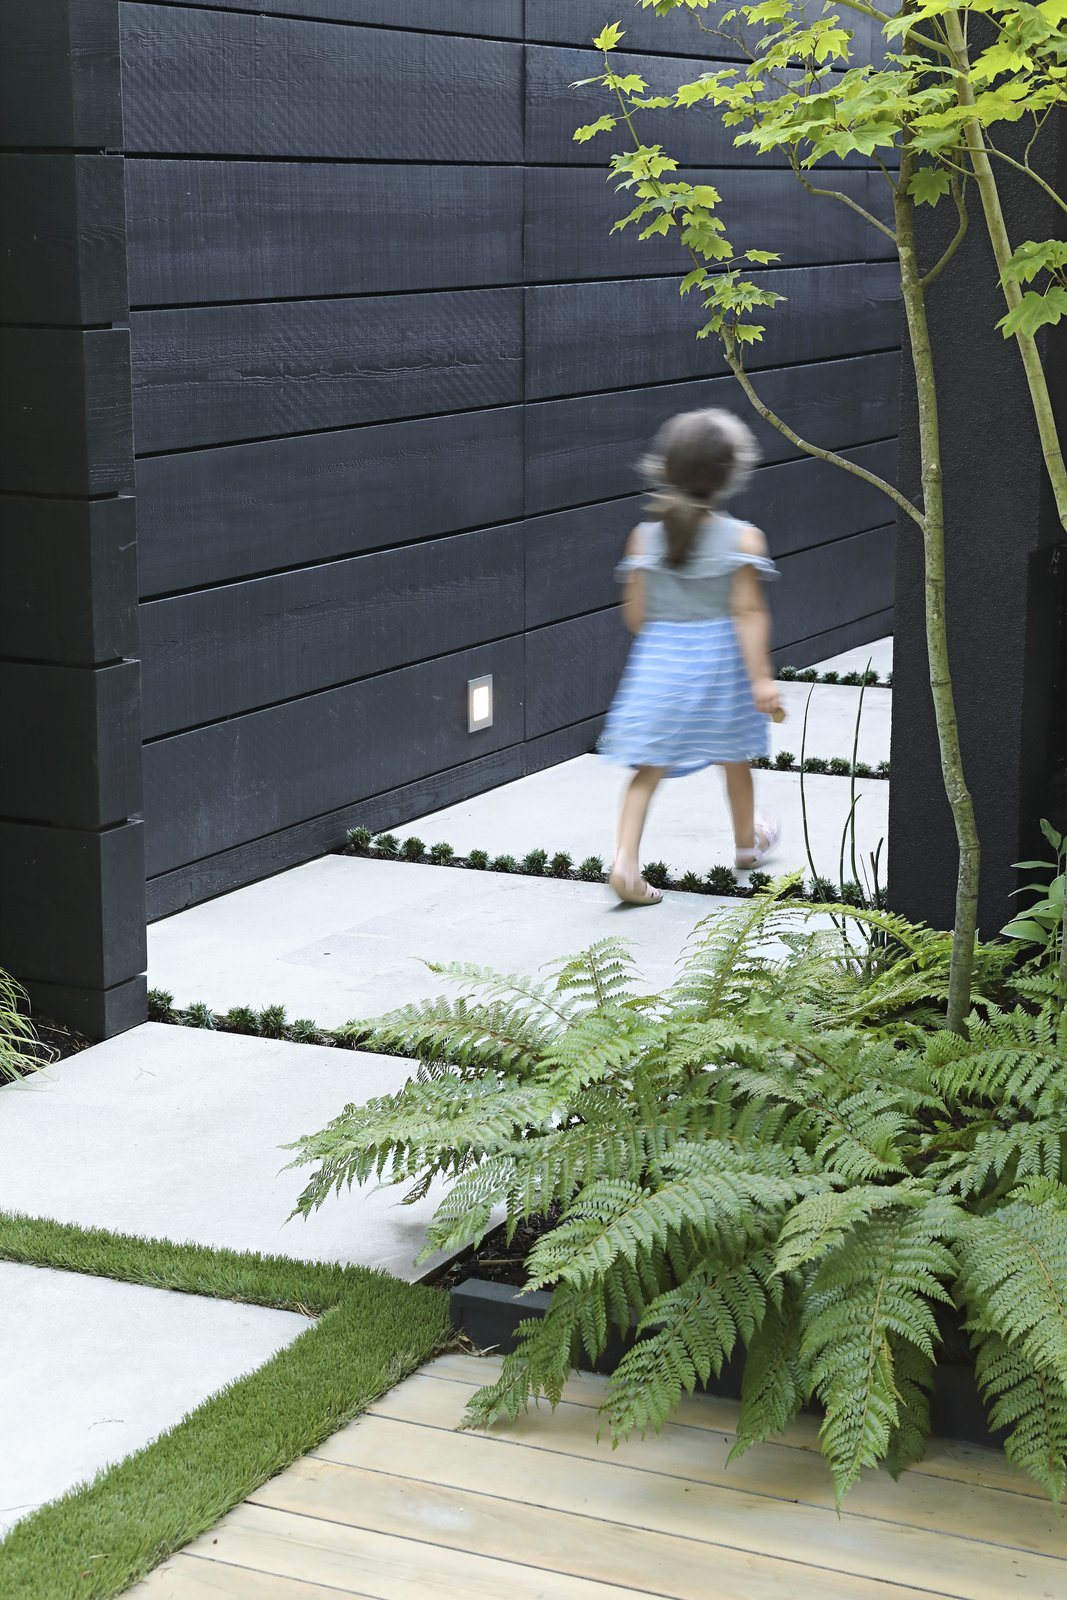 Outdoor, Wood Fences, Wall, Horizontal Fences, Wall, Concrete Patio, Porch, Deck, Side Yard, Trees, and Shrubs Hana Bea, 6, follows the concrete pavers that lead from the front yard to the side entrance.